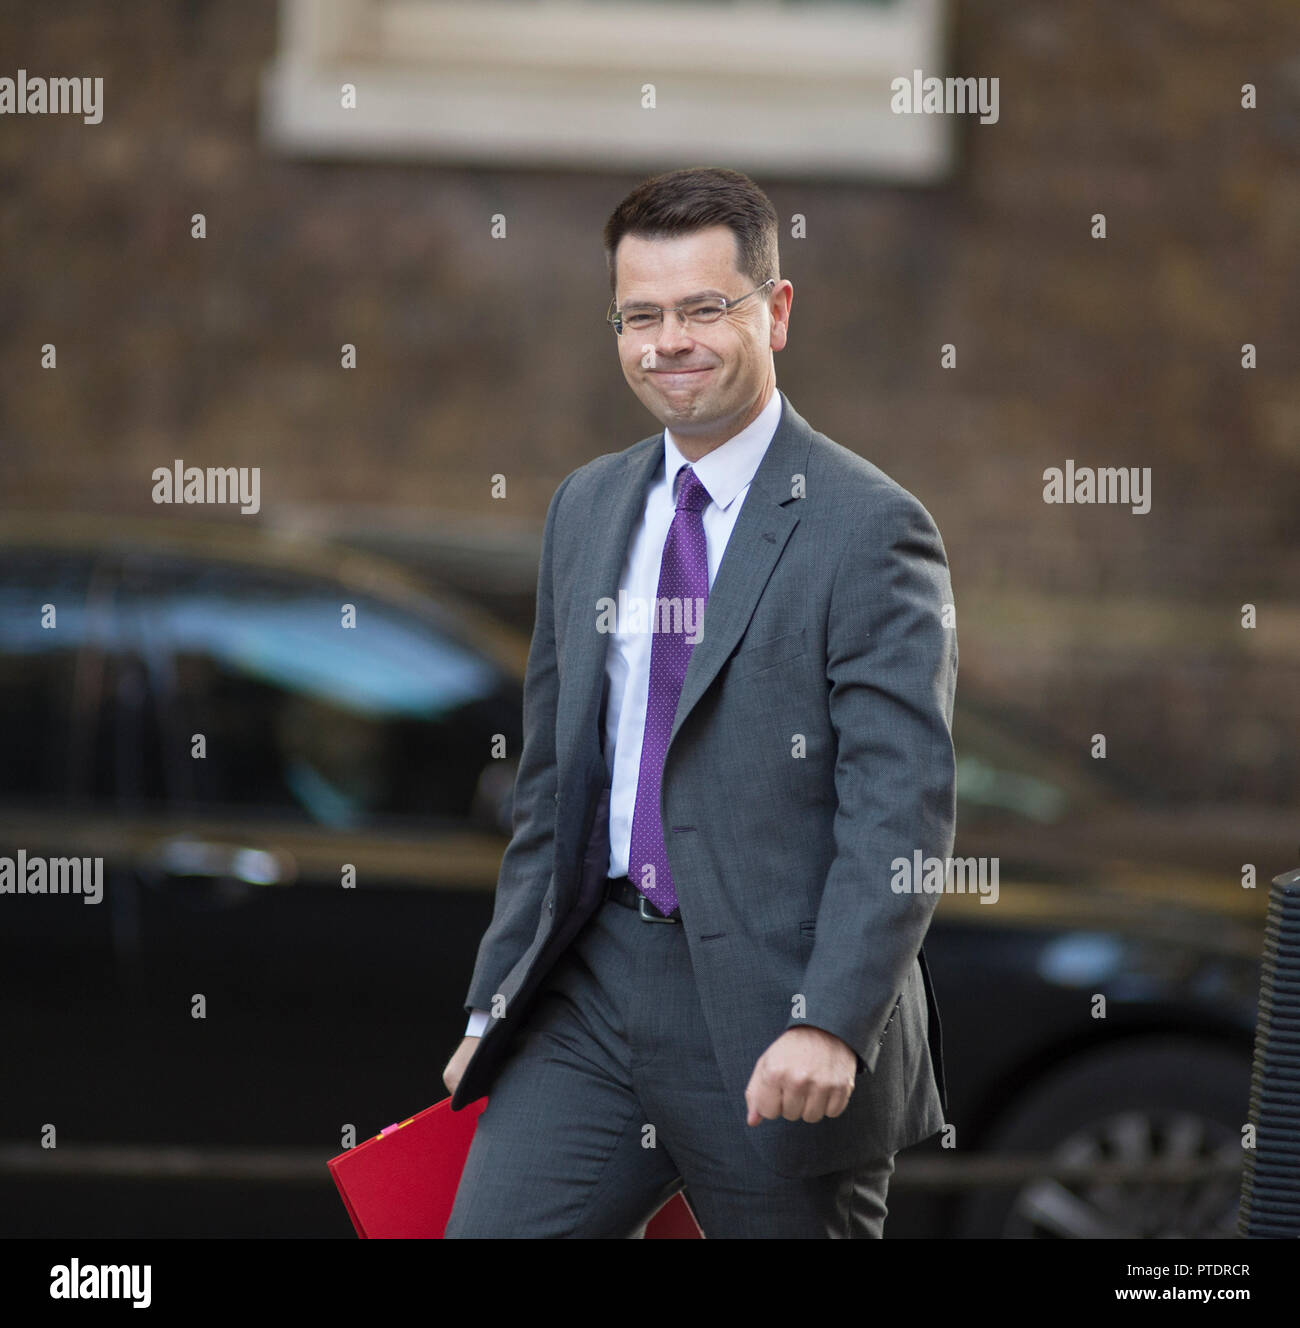 Downing Street, London, UK. 9 October 2018. James Brokenshire, Secretary of State for Housing, Communities and Local Government in Downing Street for weekly cabinet meeting. Credit: Malcolm Park/Alamy Live News. - Stock Image